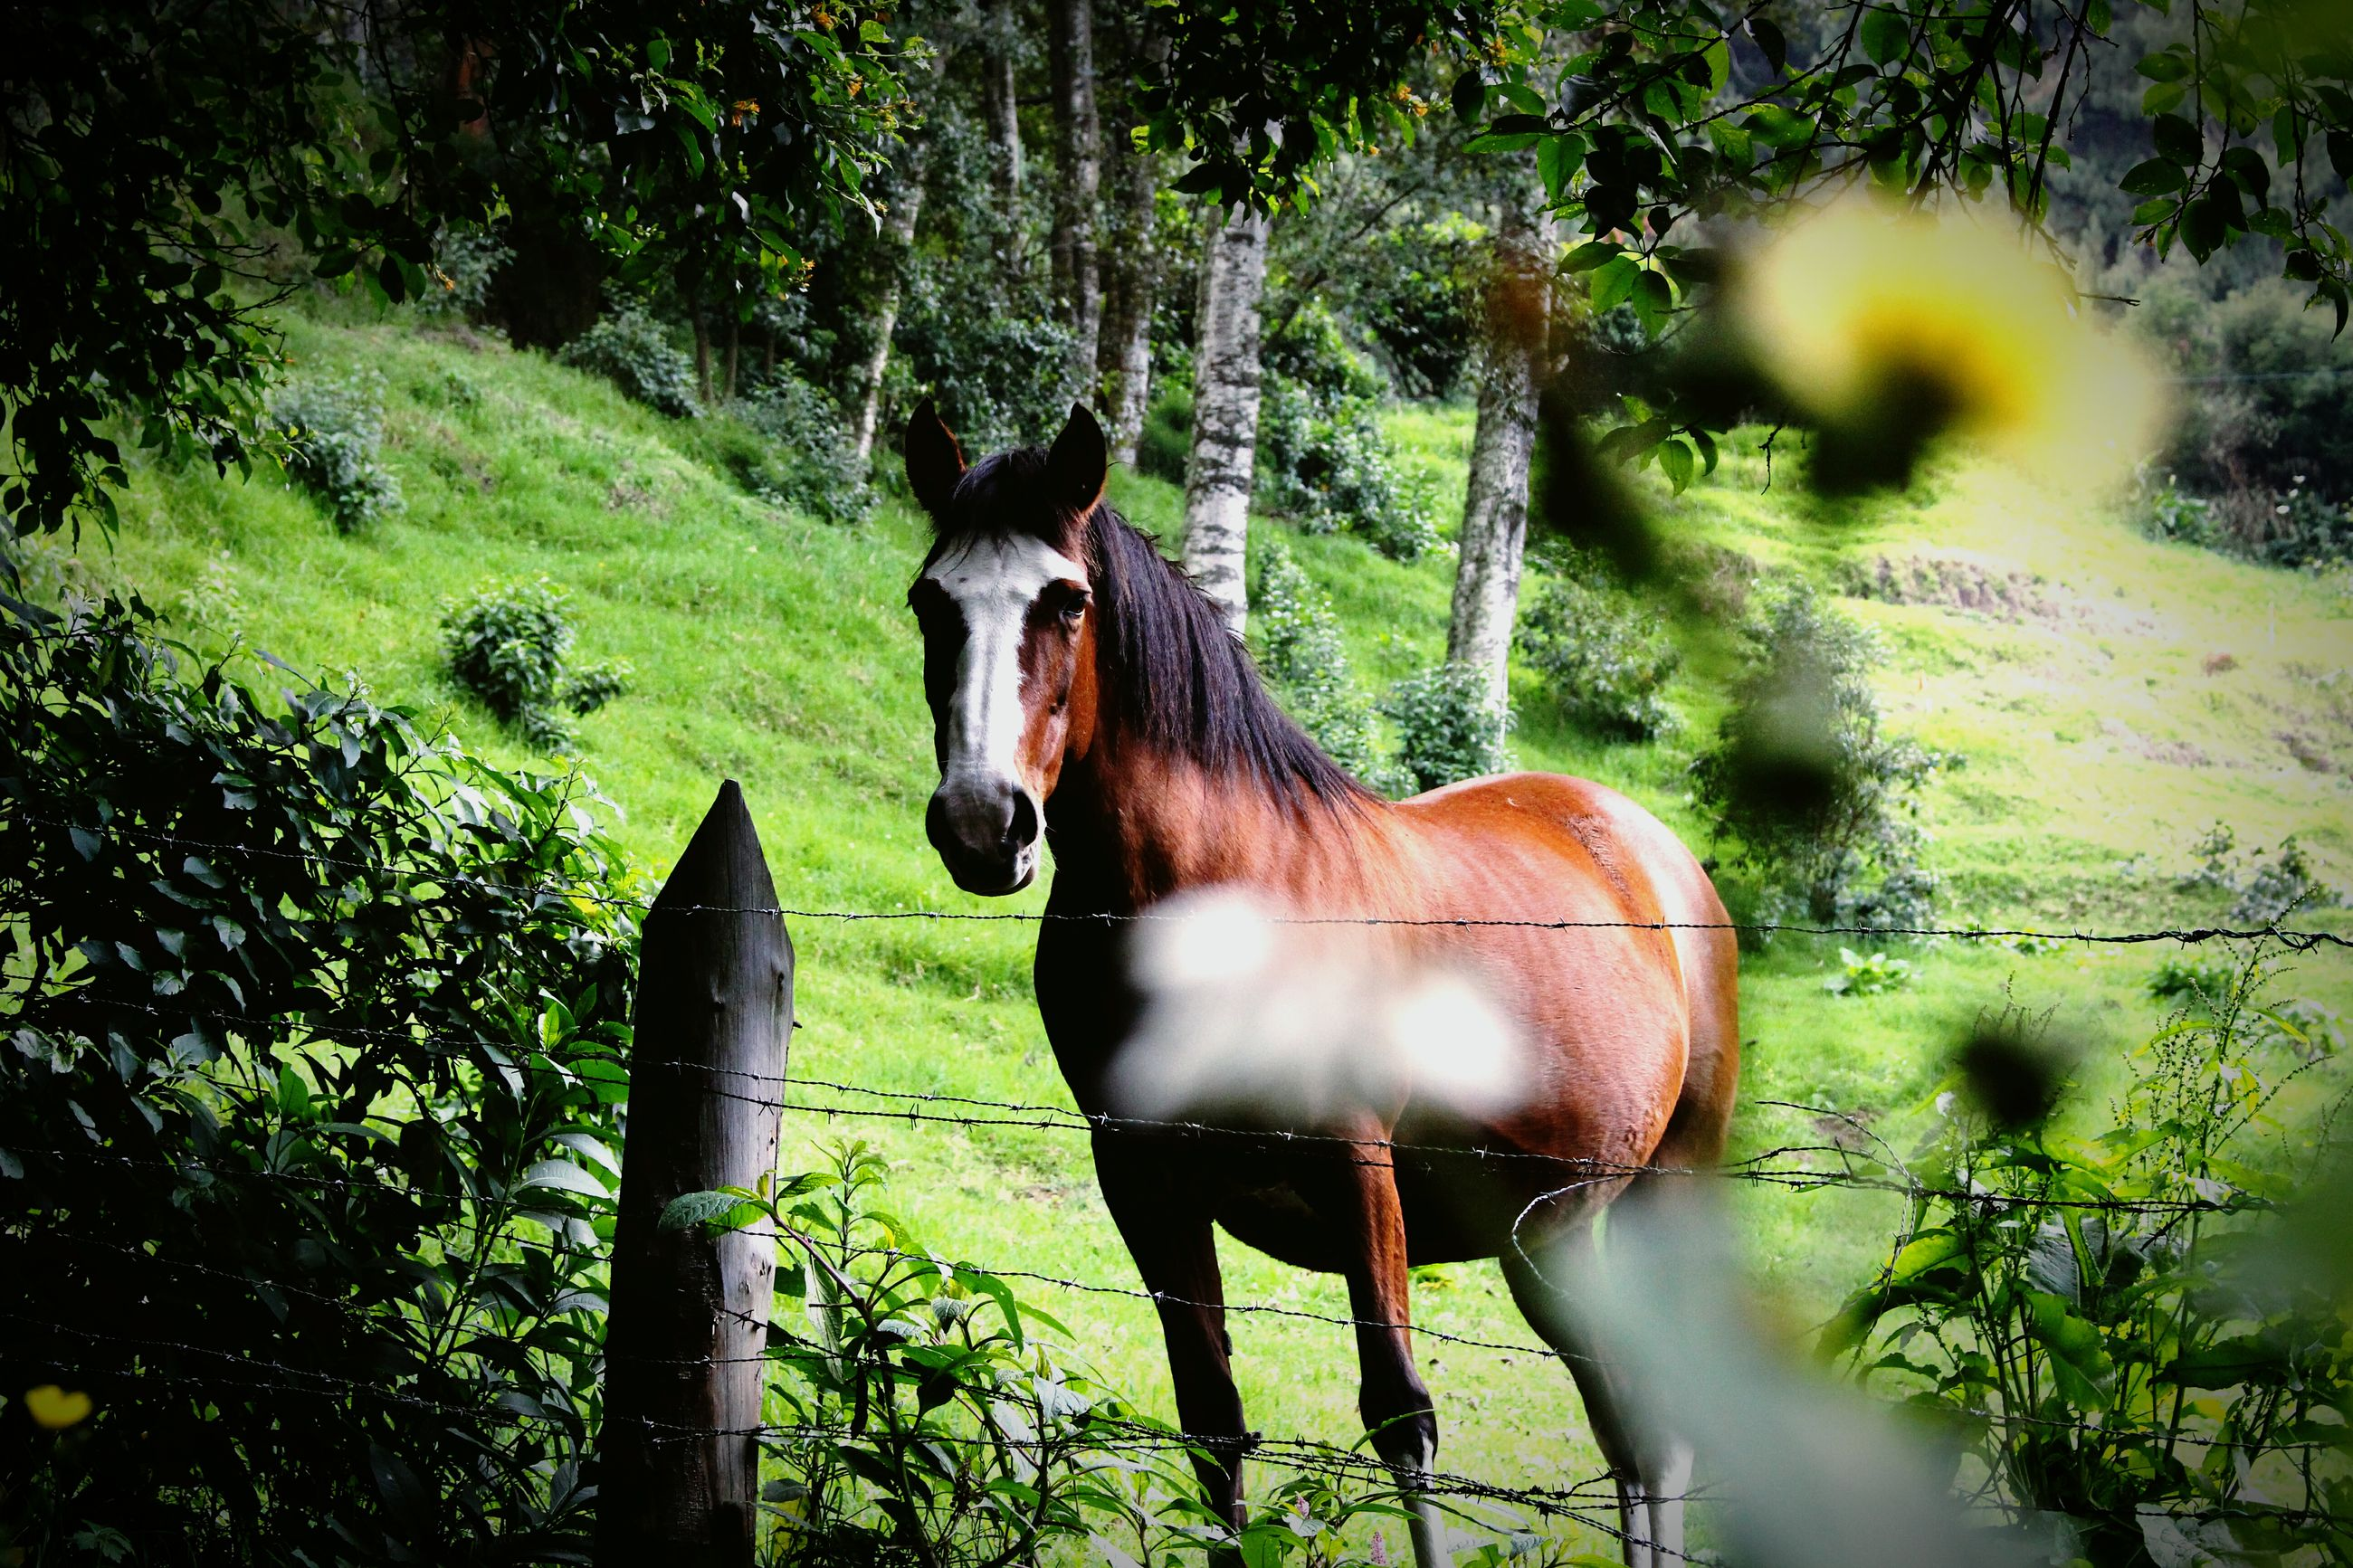 tree, animal themes, growth, horse, nature, no people, mammal, outdoors, domestic animals, one animal, day, grass